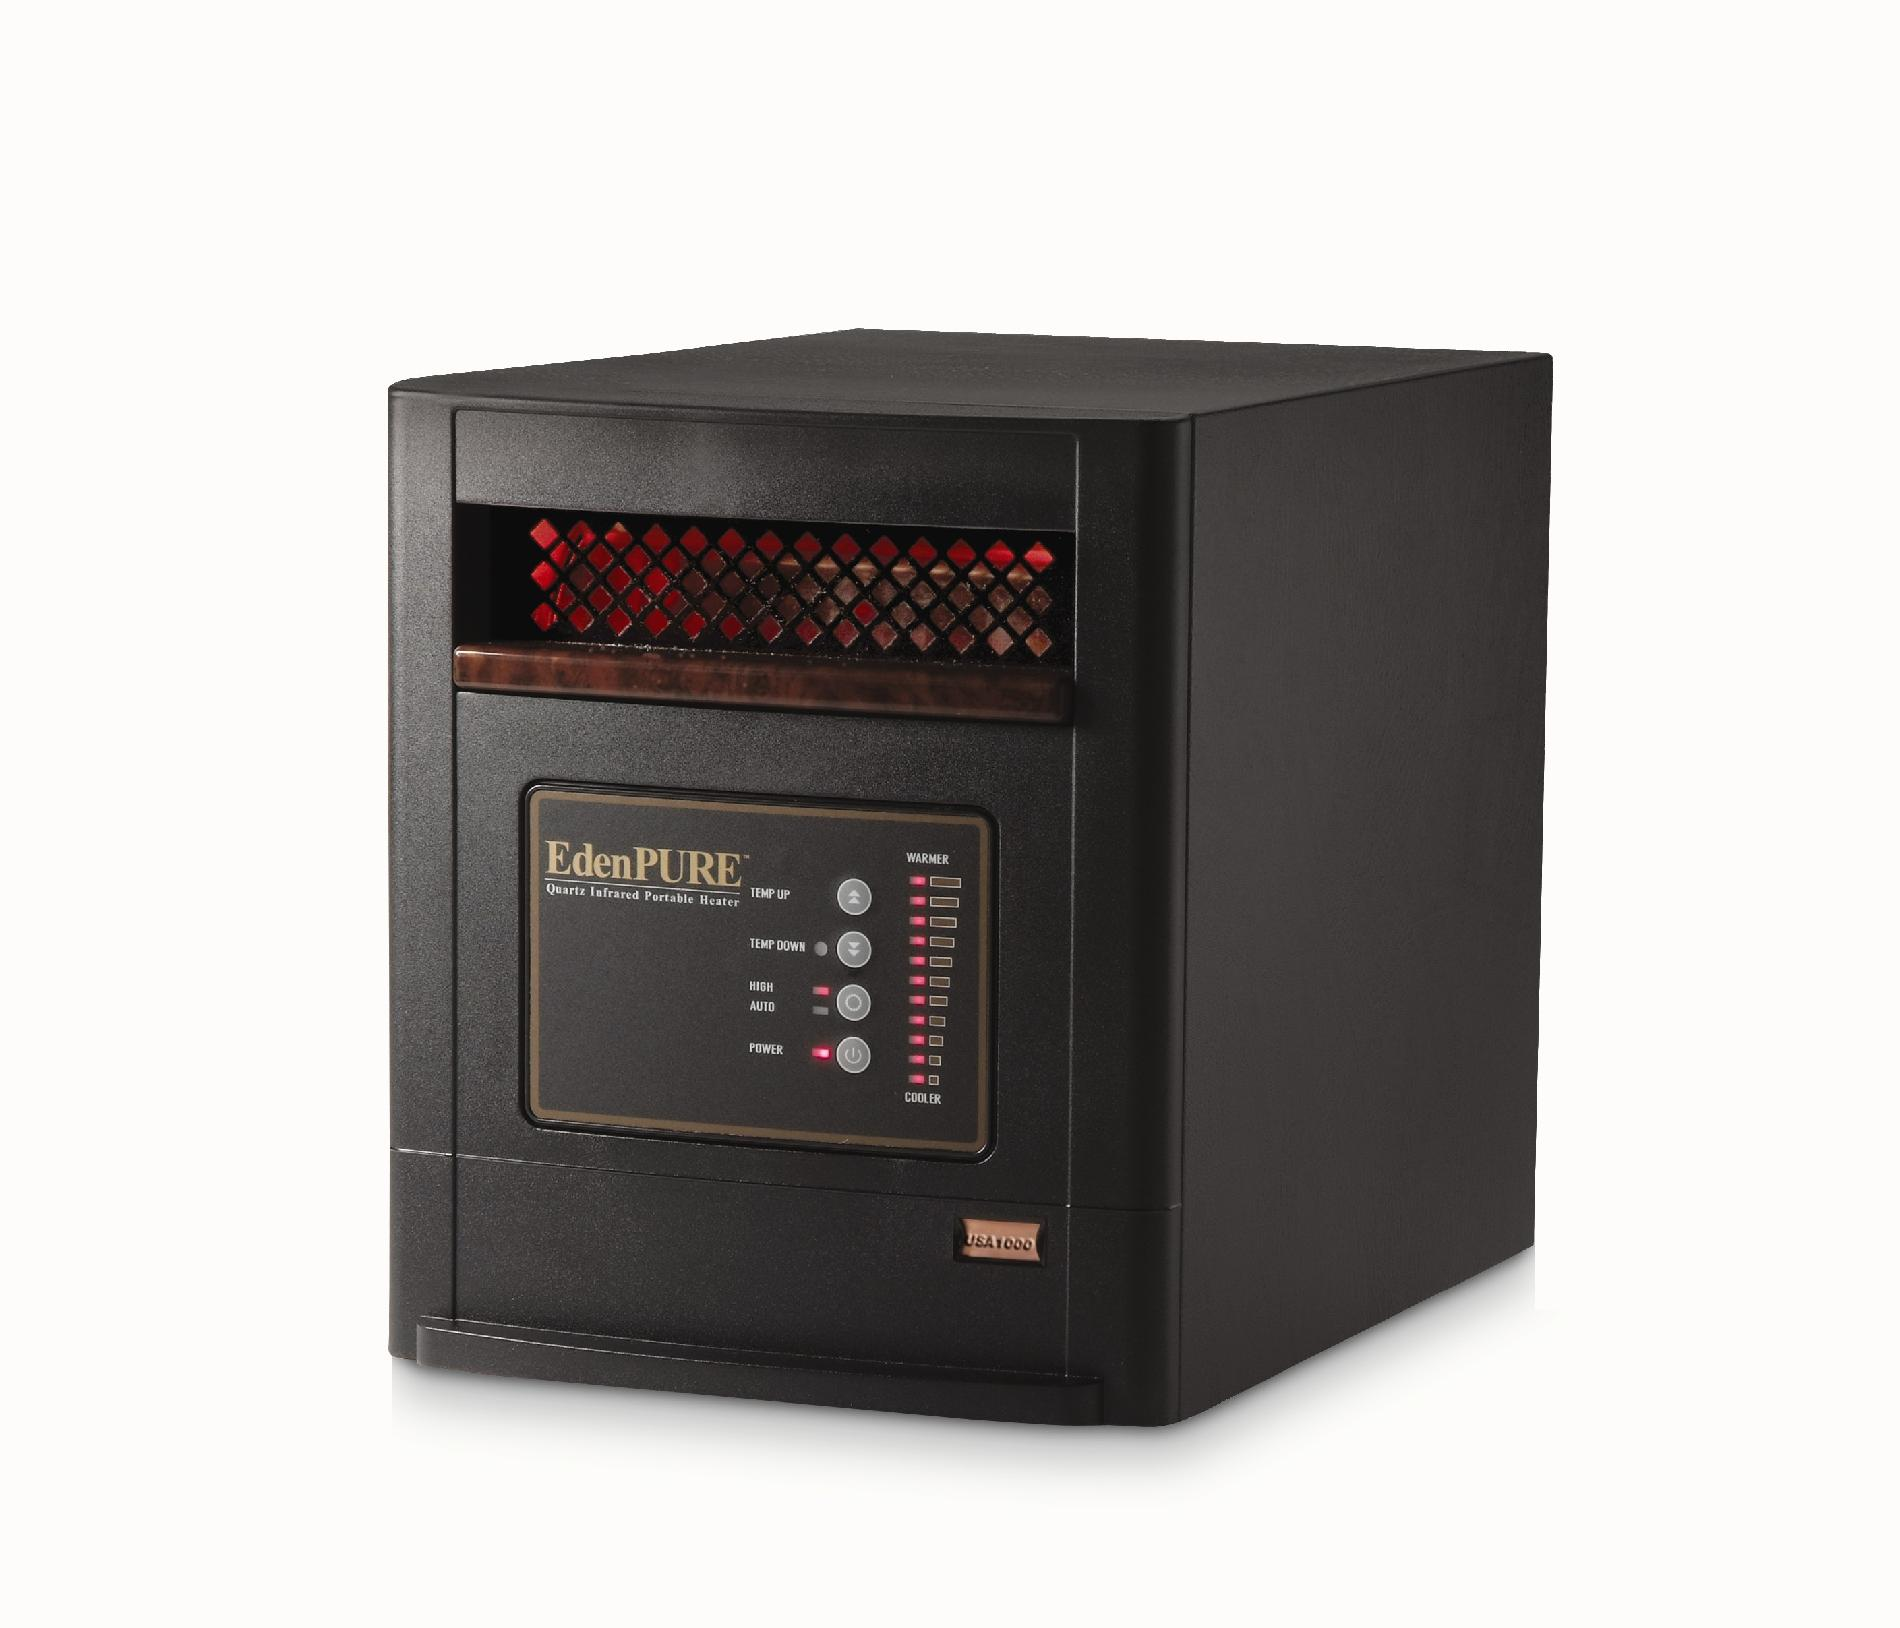 EdenPURE US1000 Portable Quartz Infrared Heater